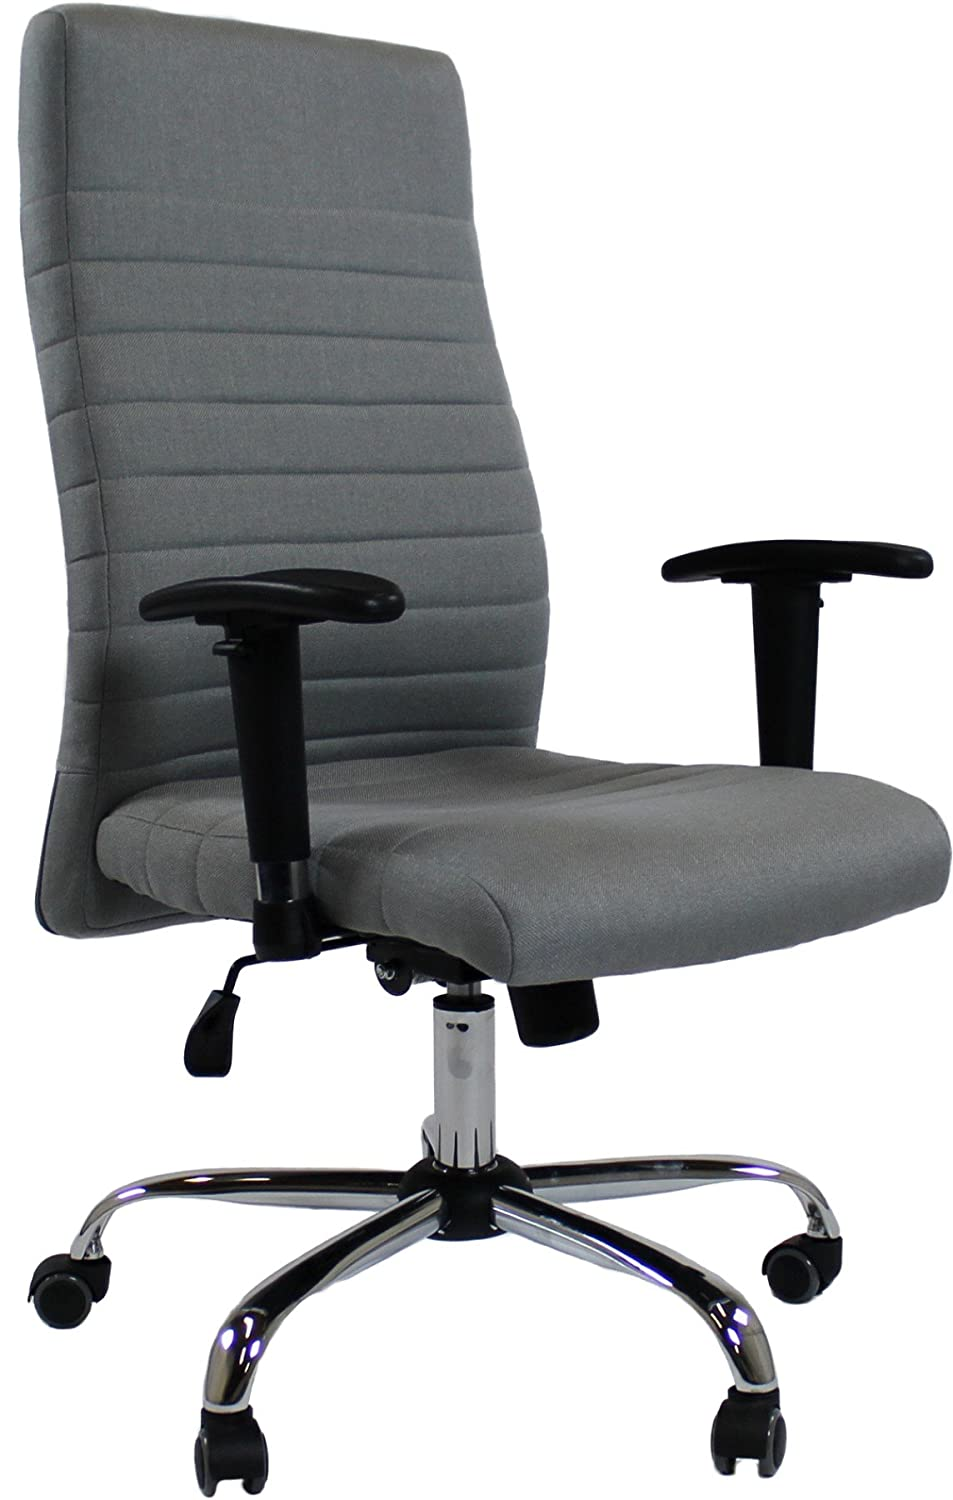 classic office chair. Charles Jacobs Retro Classic Design Executive Computer Office CHAIR In Grey PREMIUM QUALITY FABRIC High Back Luxury Business/Office Seat + Chrome Base With Chair